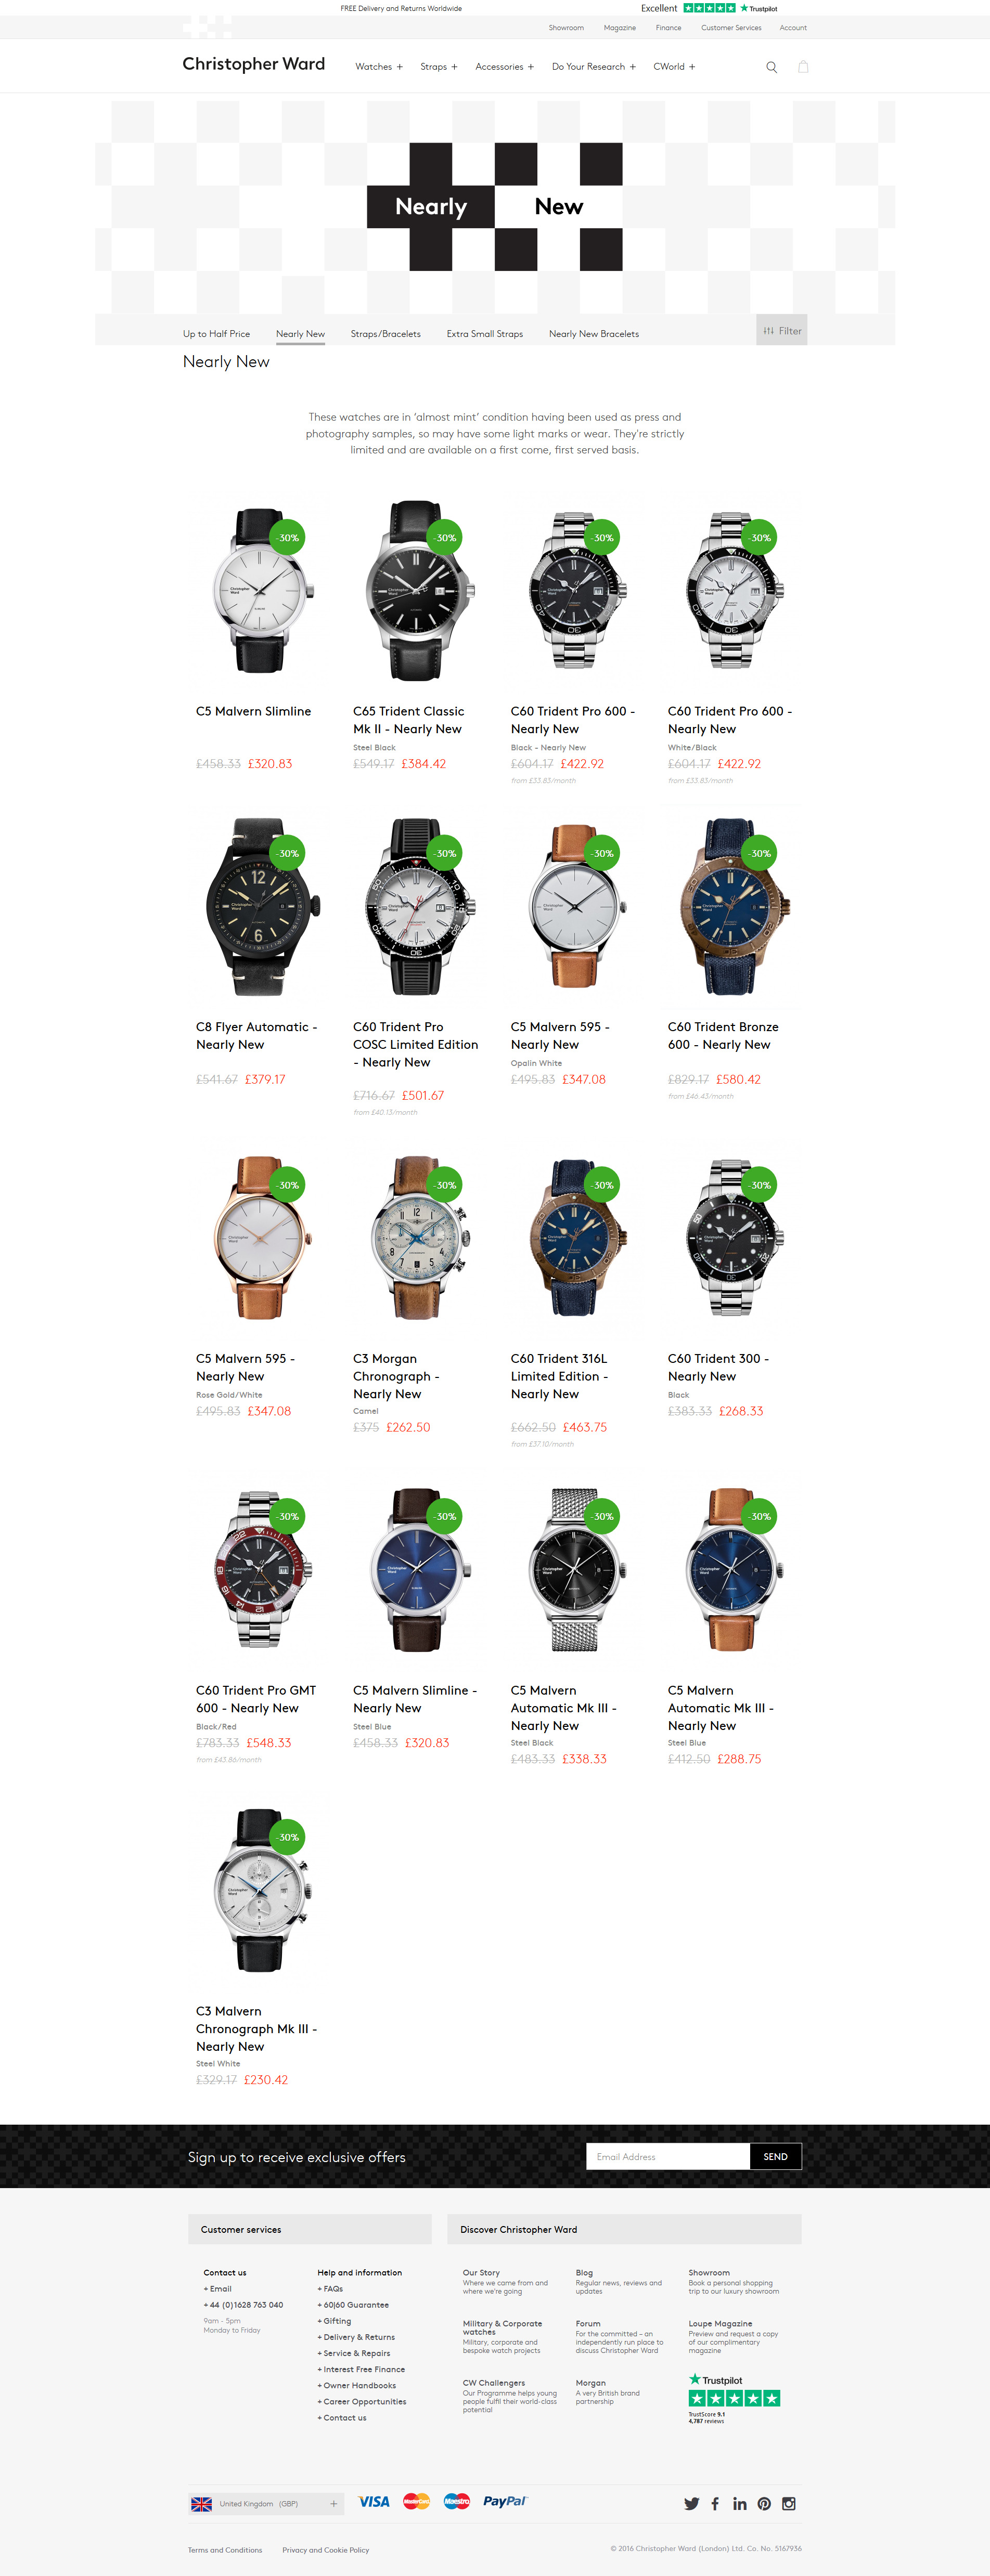 Screenshot_2019-03-05 Nearly New Watches January Sale Christopher Ward.jpg